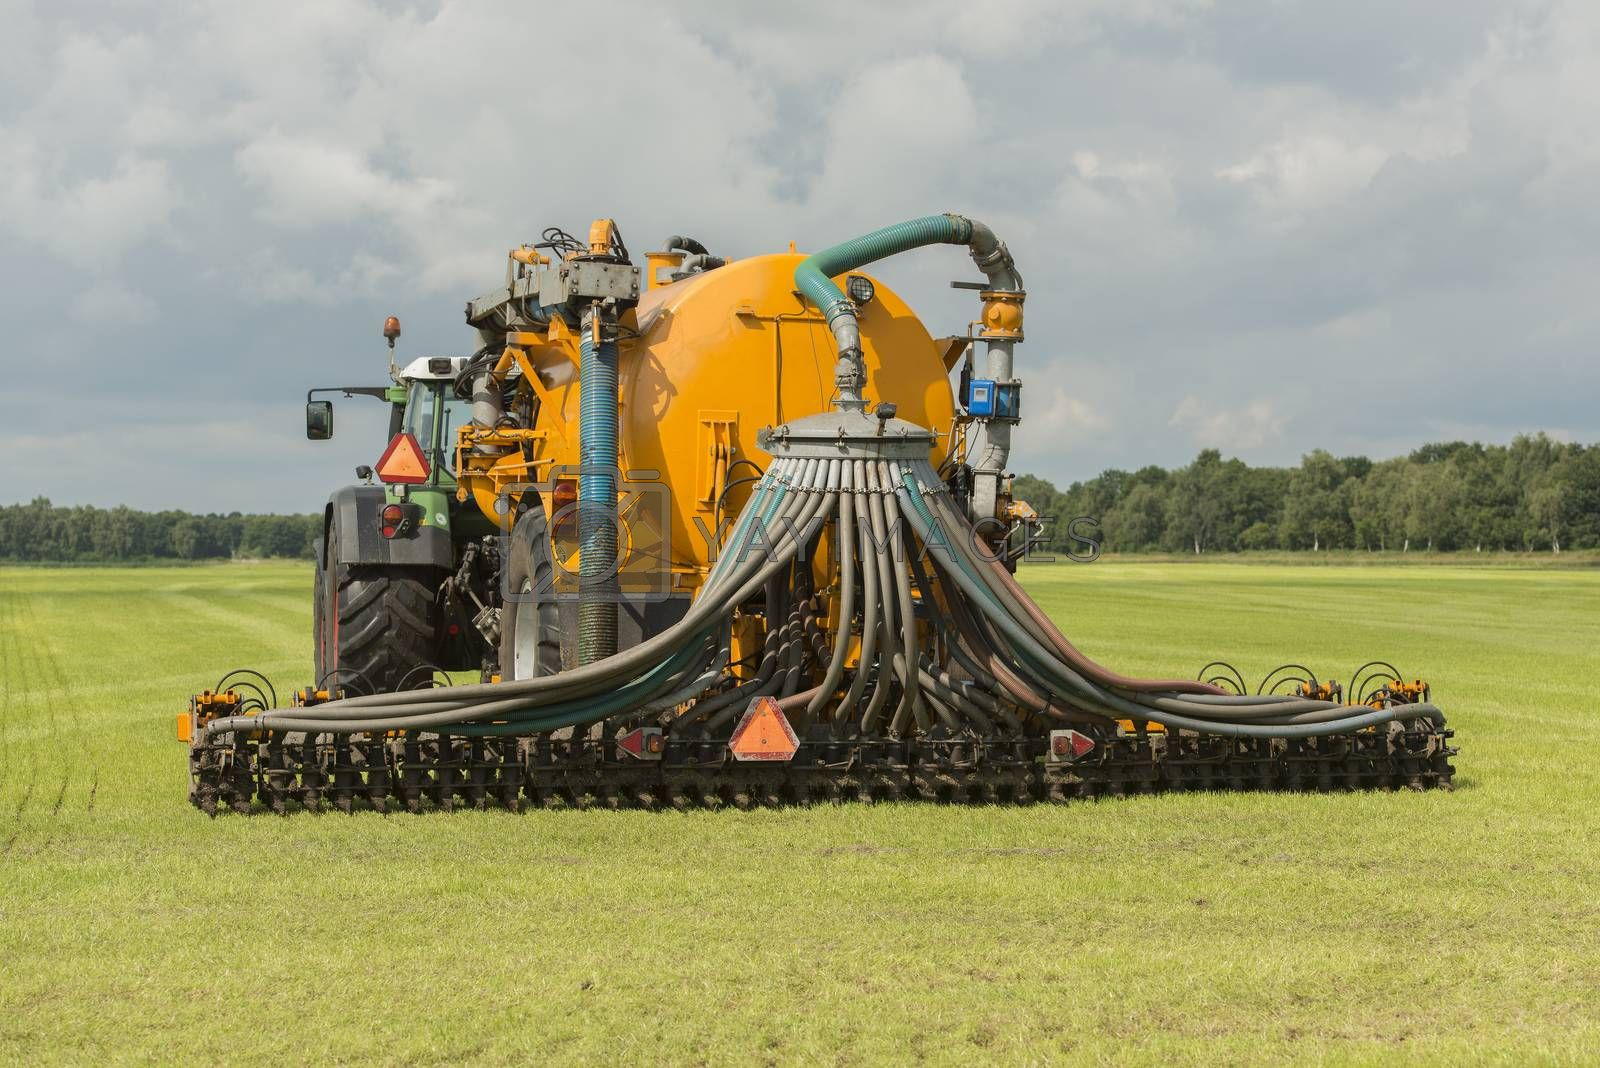 Agriculture, injecting of liquid manure with tractor and yellow vulture spreader trailer